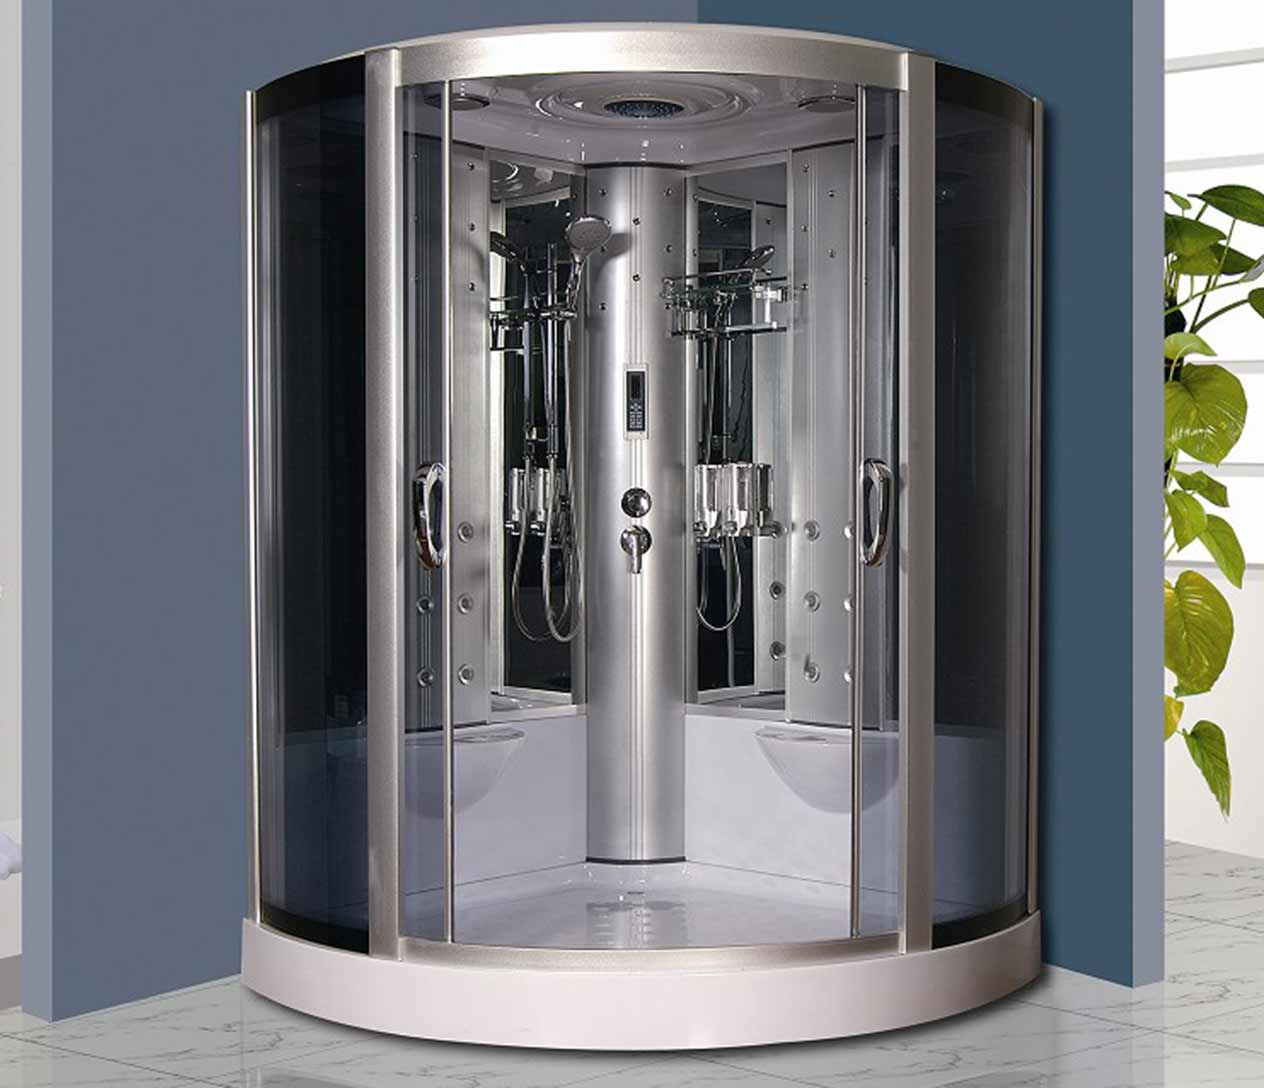 Ax 723 steam shower luxury spas inc - Luxury steam showers ...